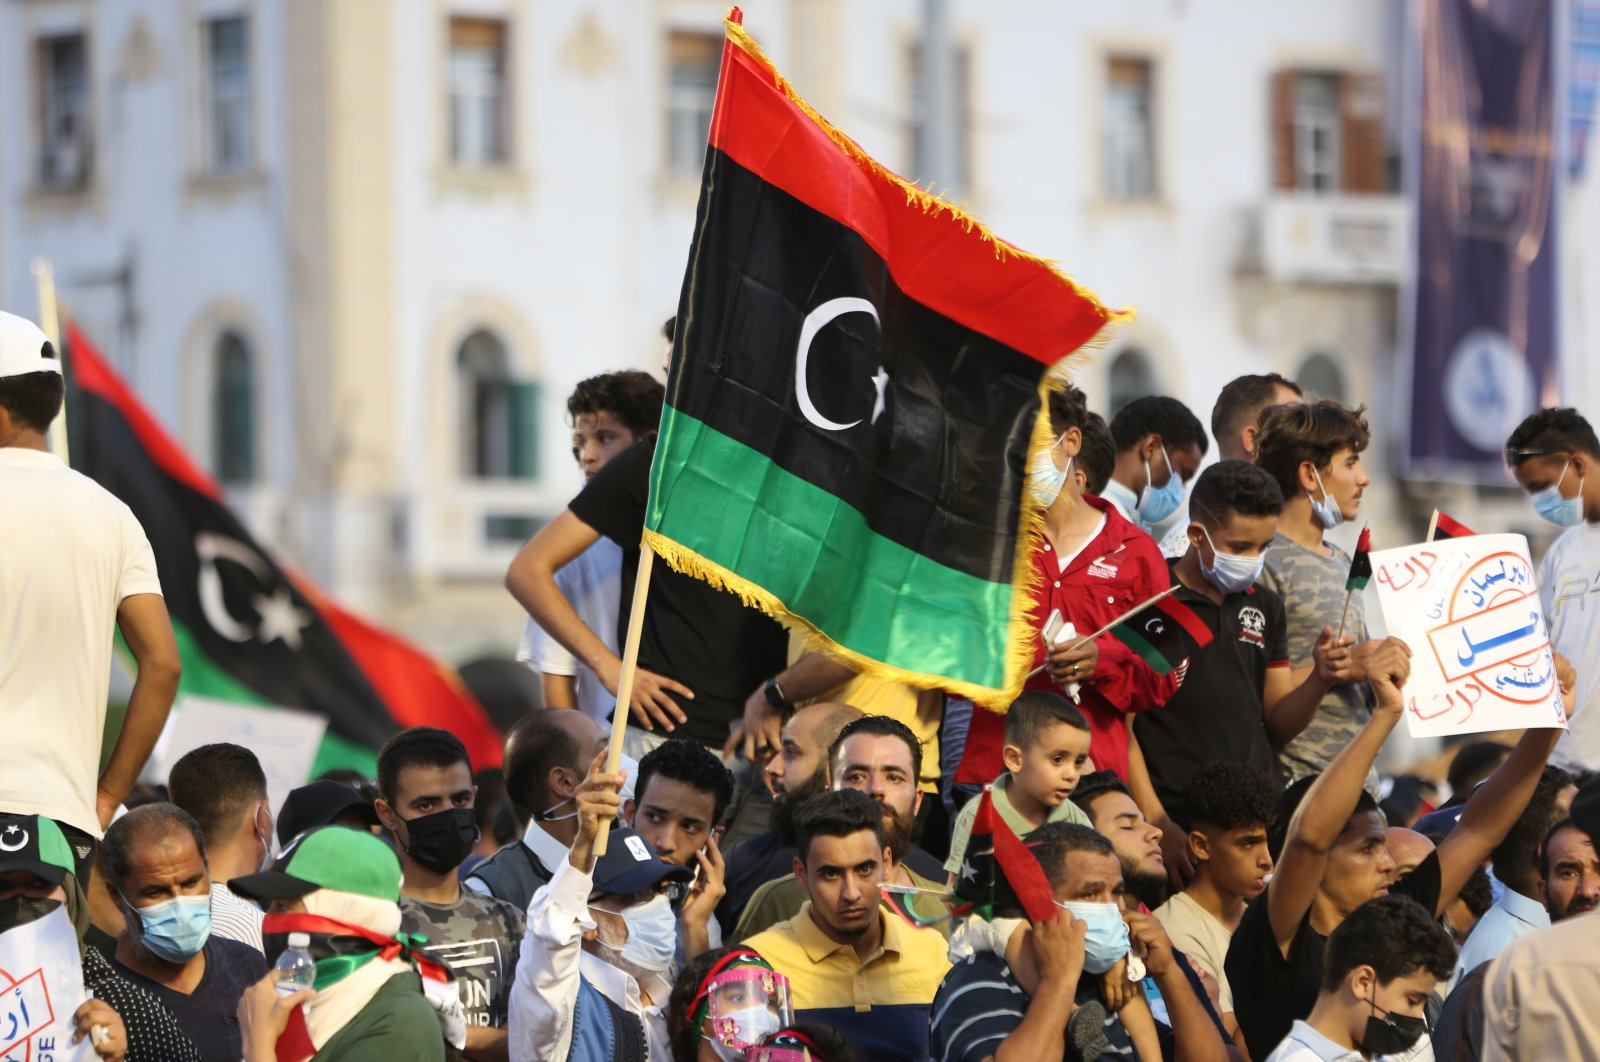 Hundreds of demonstrators protest in Tripoli, Libya, Friday, Sept. 24, 2021, opposing the parliament's vote of no-confidence (AA Photo)